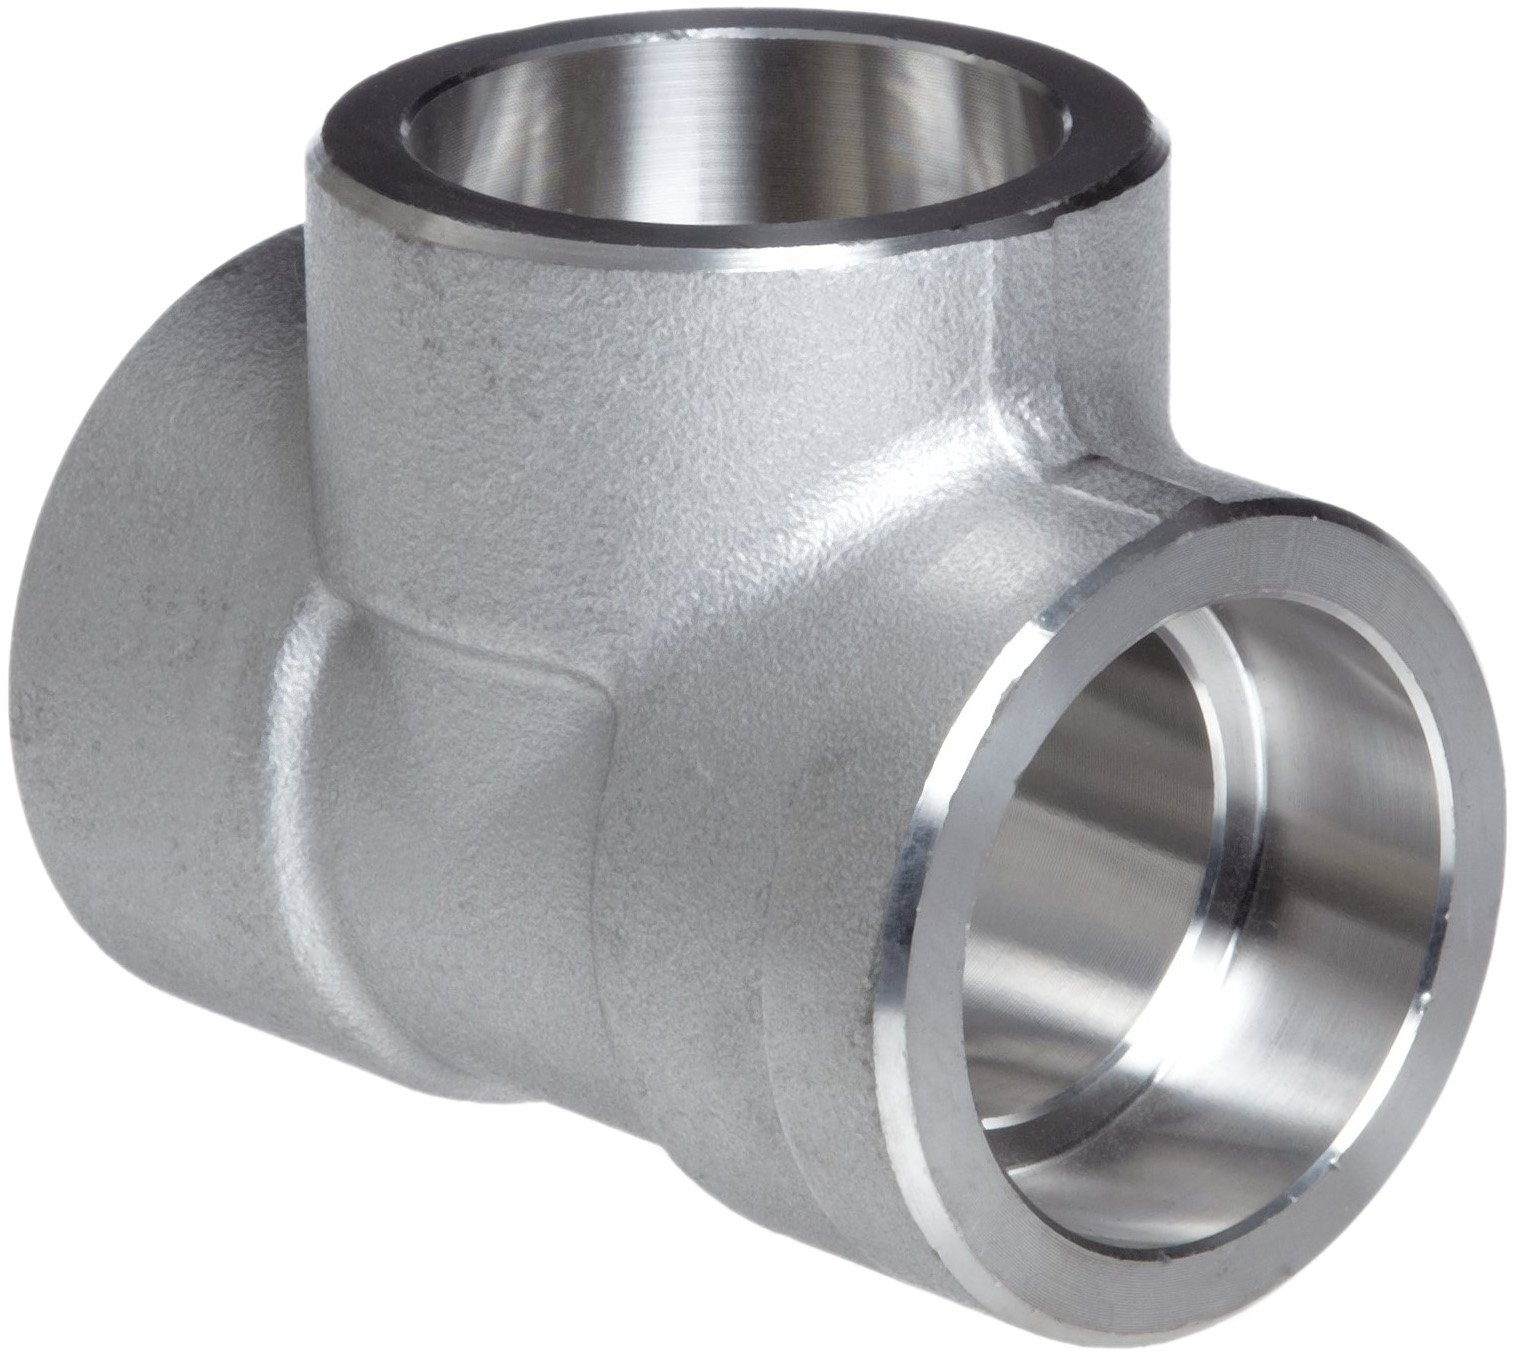 Steel Pipe Couplers : Stainless steel socket weld tee newcore global pvt ltd